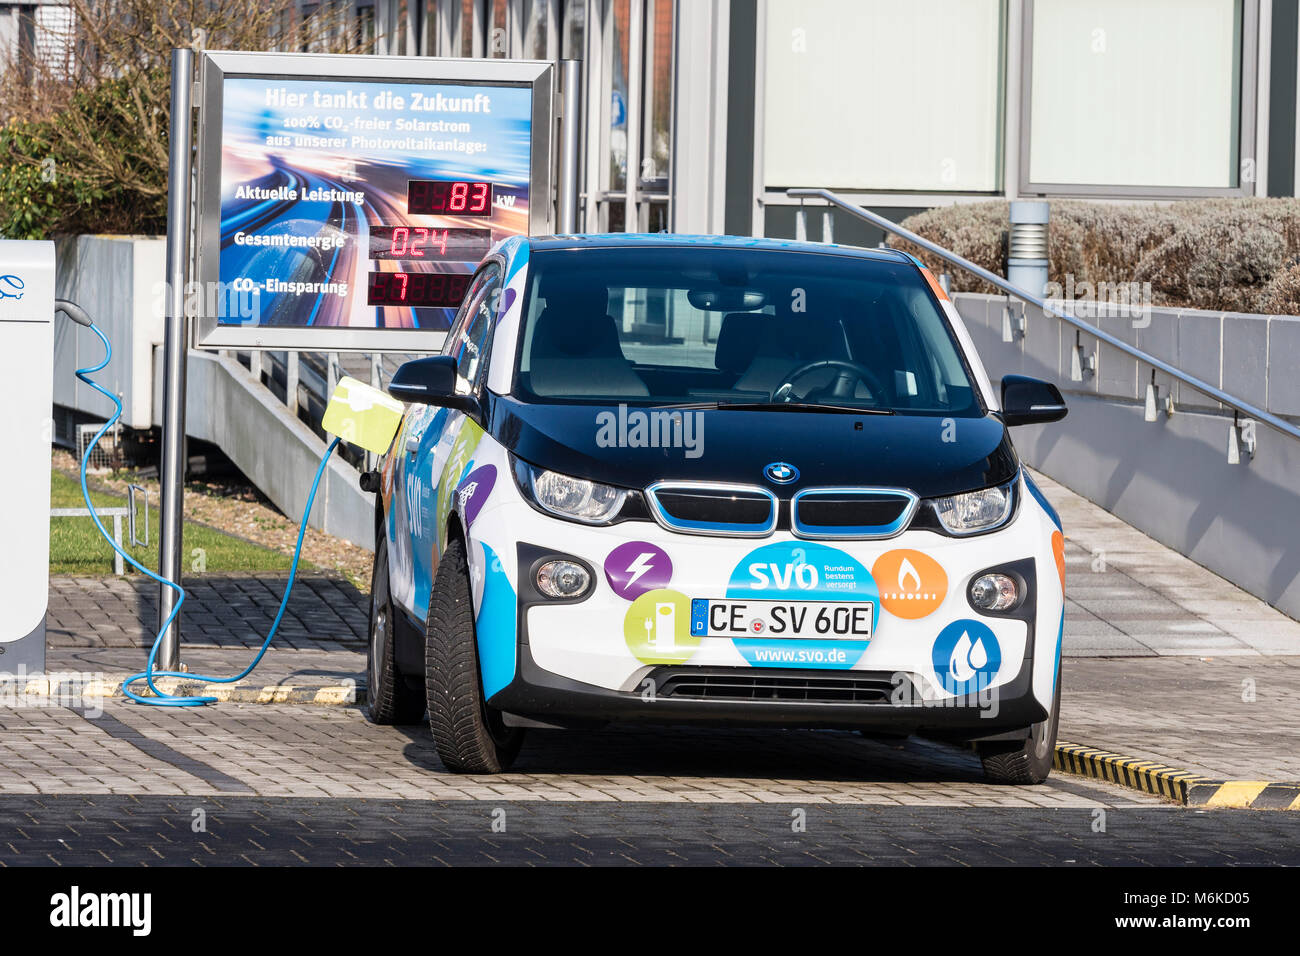 Electric car gets charged at local power supply company, using renewable solar energy, Celle, Germany, Lower-Saxony Stock Photo